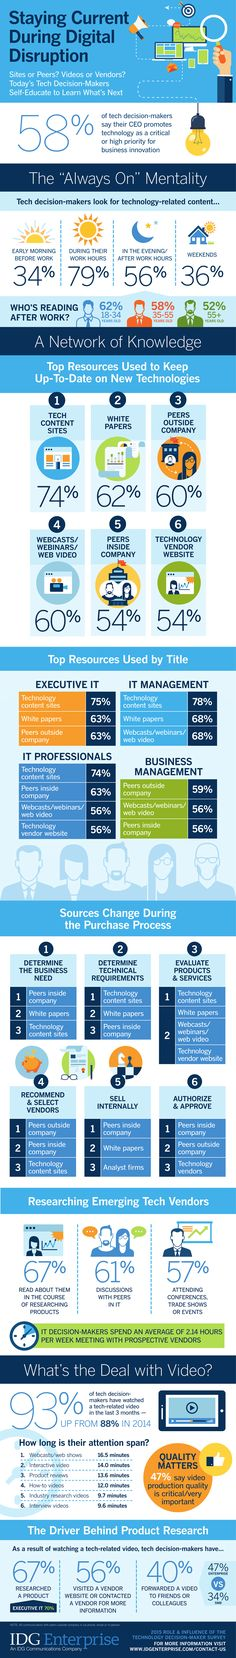 How IT Stays Current During Digital Disruption #infographic #IT #Technology #Marketing